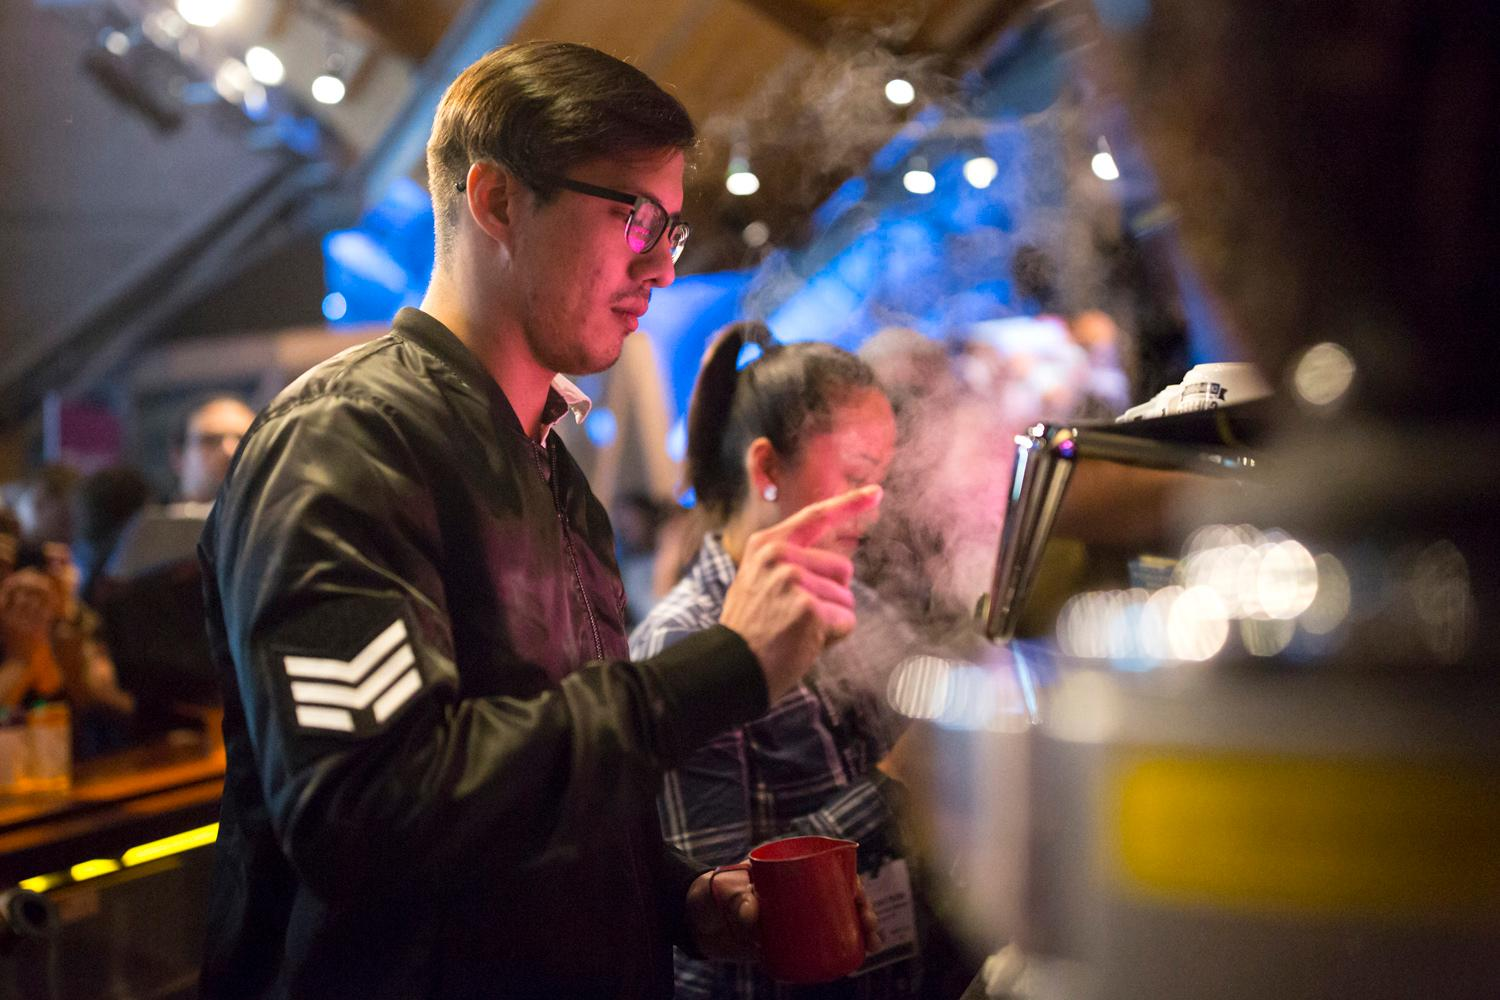 The 2018 US Coffee Championship kicked off Thursday night with the Latte Art Throwdown at MoPOP. Competitors had to use a UNIC Stella 2 Group coffee machine, a UNIC grinder, and Pacific Foods Non-Dairy Beverages for the milk. The winner took home a brand new machine, grinder, and temperature controlled thermos. (Sy Bean / Seattle Refined)